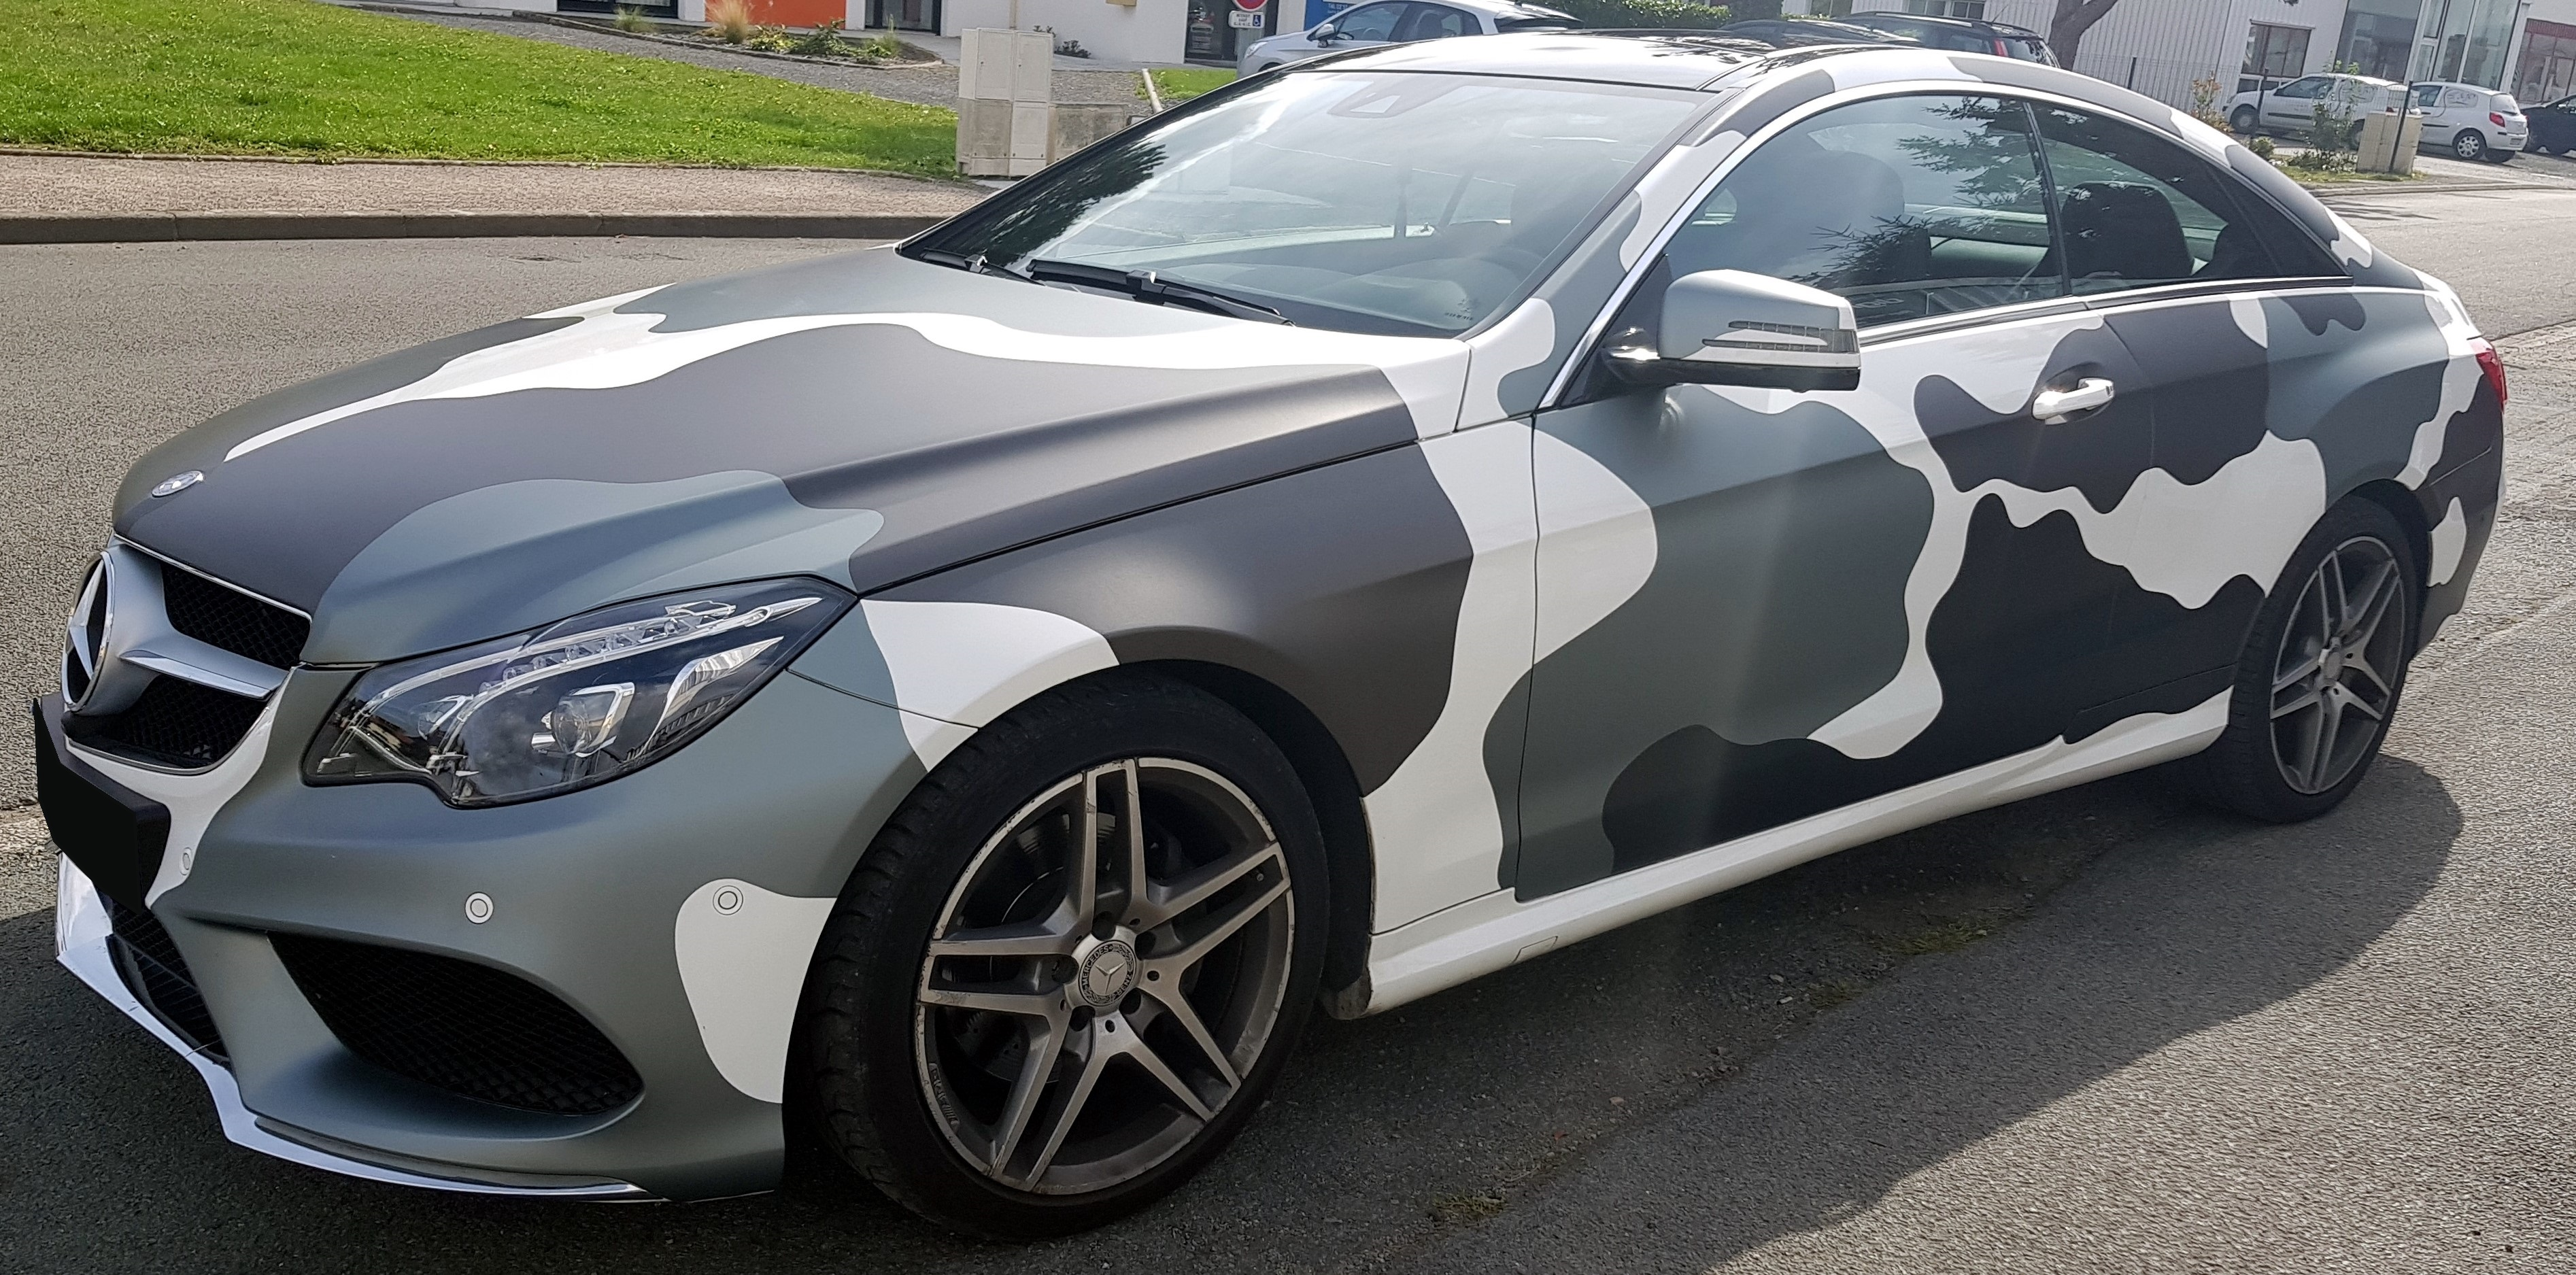 Covering camouflage voiture